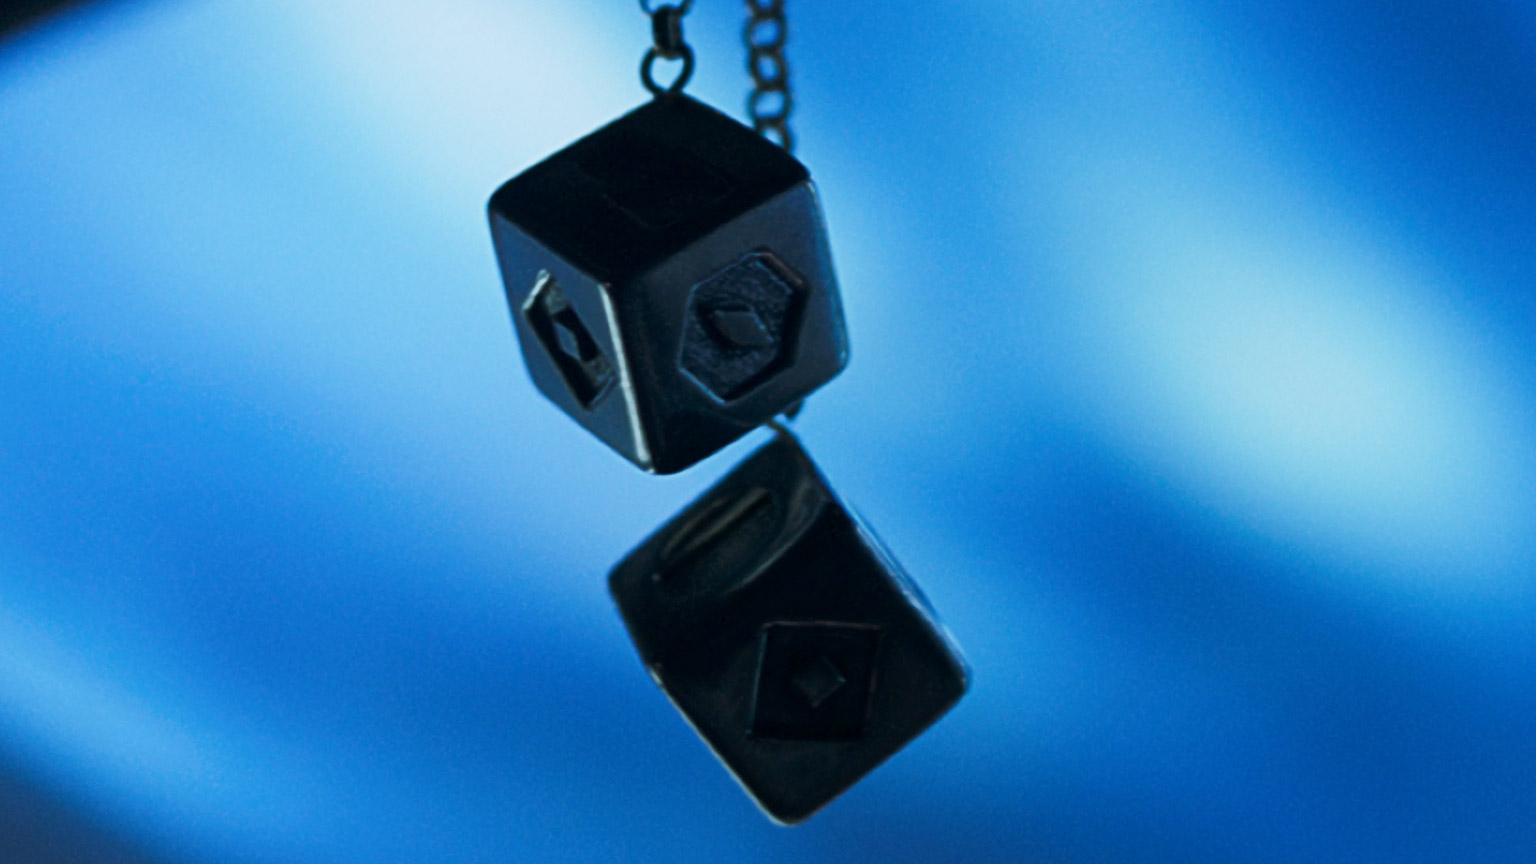 Han's dice as seen in Solo: A Star Wars Story.